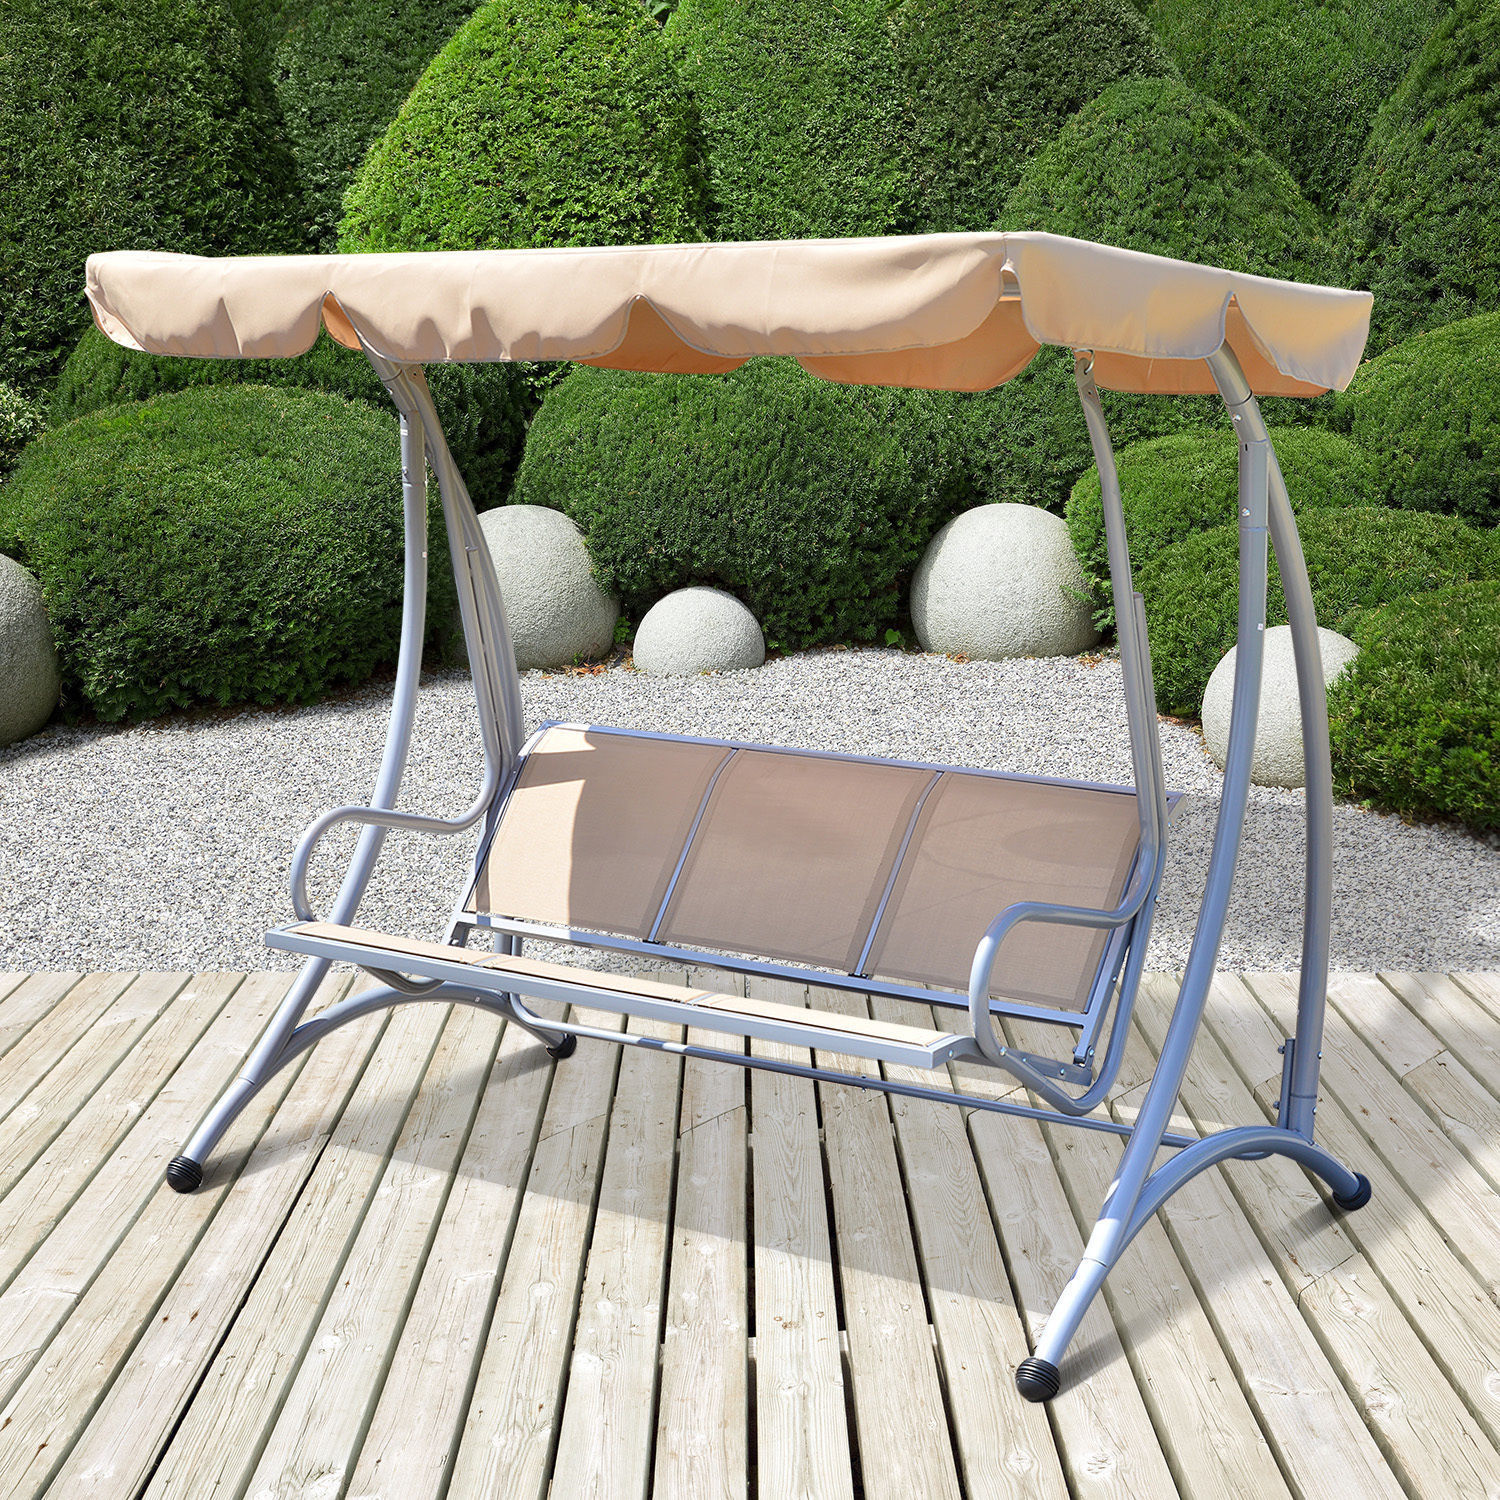 Image of £124.99 Outsunny 3-Seater Swing Chair, Polyester-Beige / 3 Seater Canopy Chair Hammock Garden Outdoor Patio Metal Rocking Seat Swat Bench Beige 01-0885 5056029893463